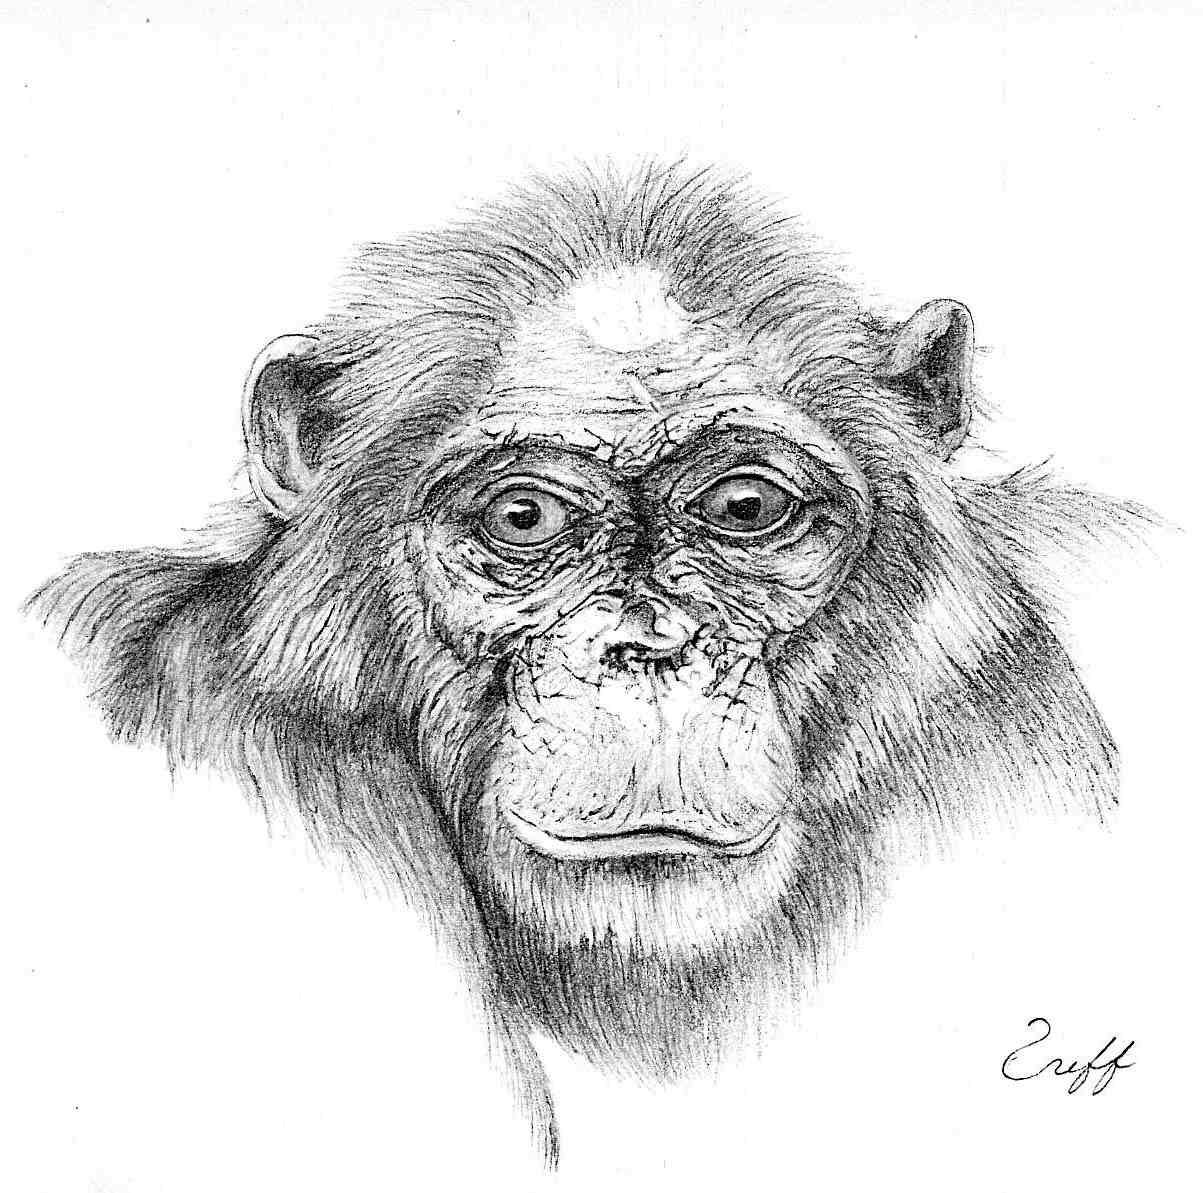 Fifi, by Jeff. This drawing won an award at an art festival to which Marc submitted it. All signed artwork and prose using first and last names are posted with the permission of the artist or writer.